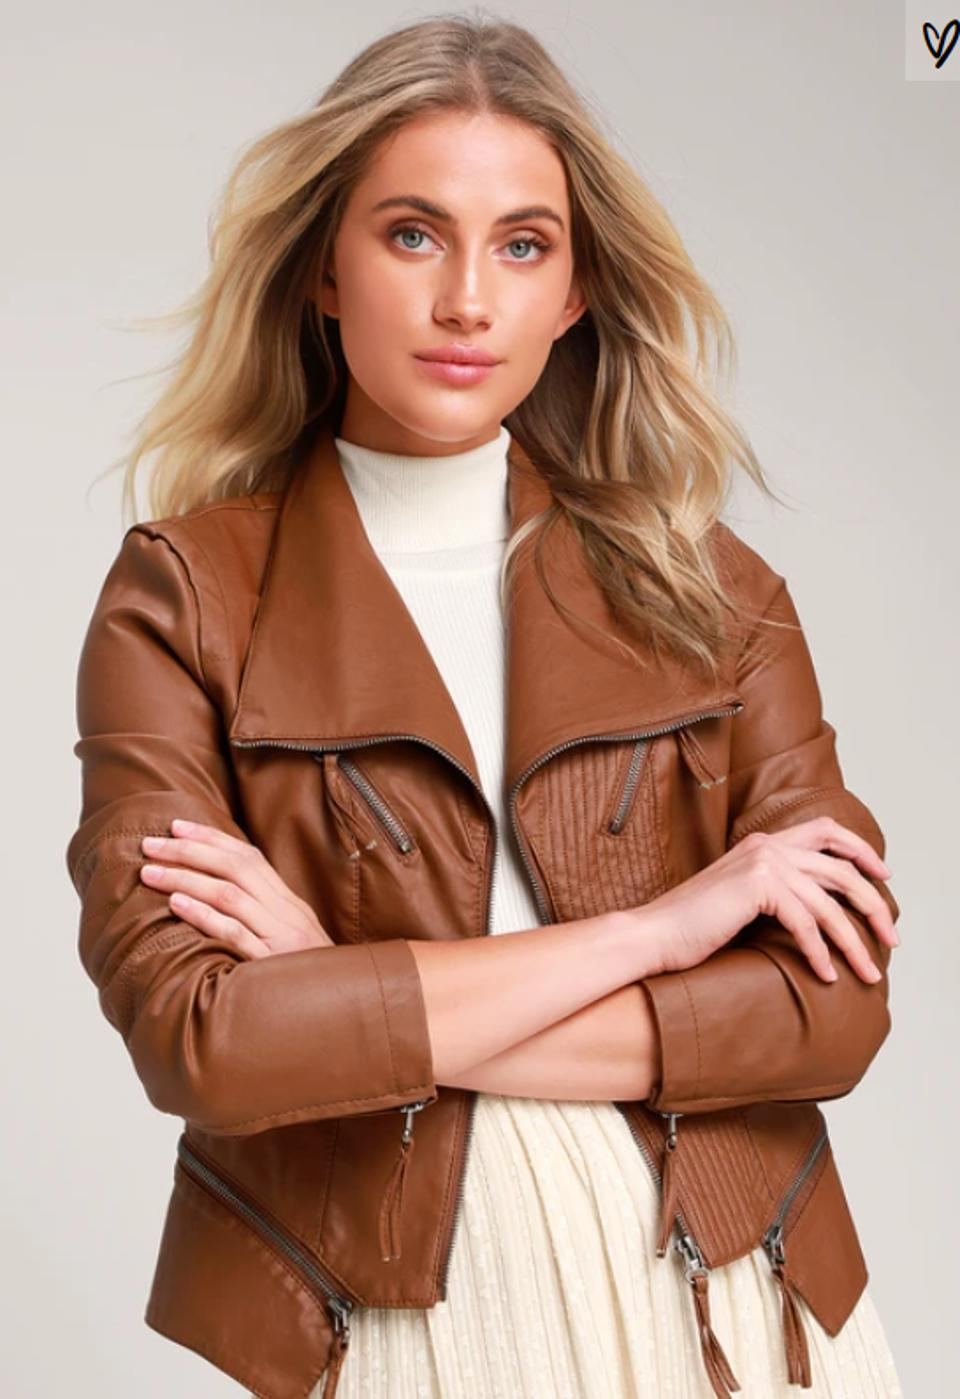 Weekday or not, go from day to night with the Lulus Up on a Tuesday Camel Vegan Leather Jacket. This sleek moto jacket has a collared neckline, long sleeves with zipper cuffs, and eye-catching top-stitching throughout, making it a perfect fall staple for your wardrobe. Better yet, the buttery soft fabrics feel as luxurious as leather all at an affordable price.